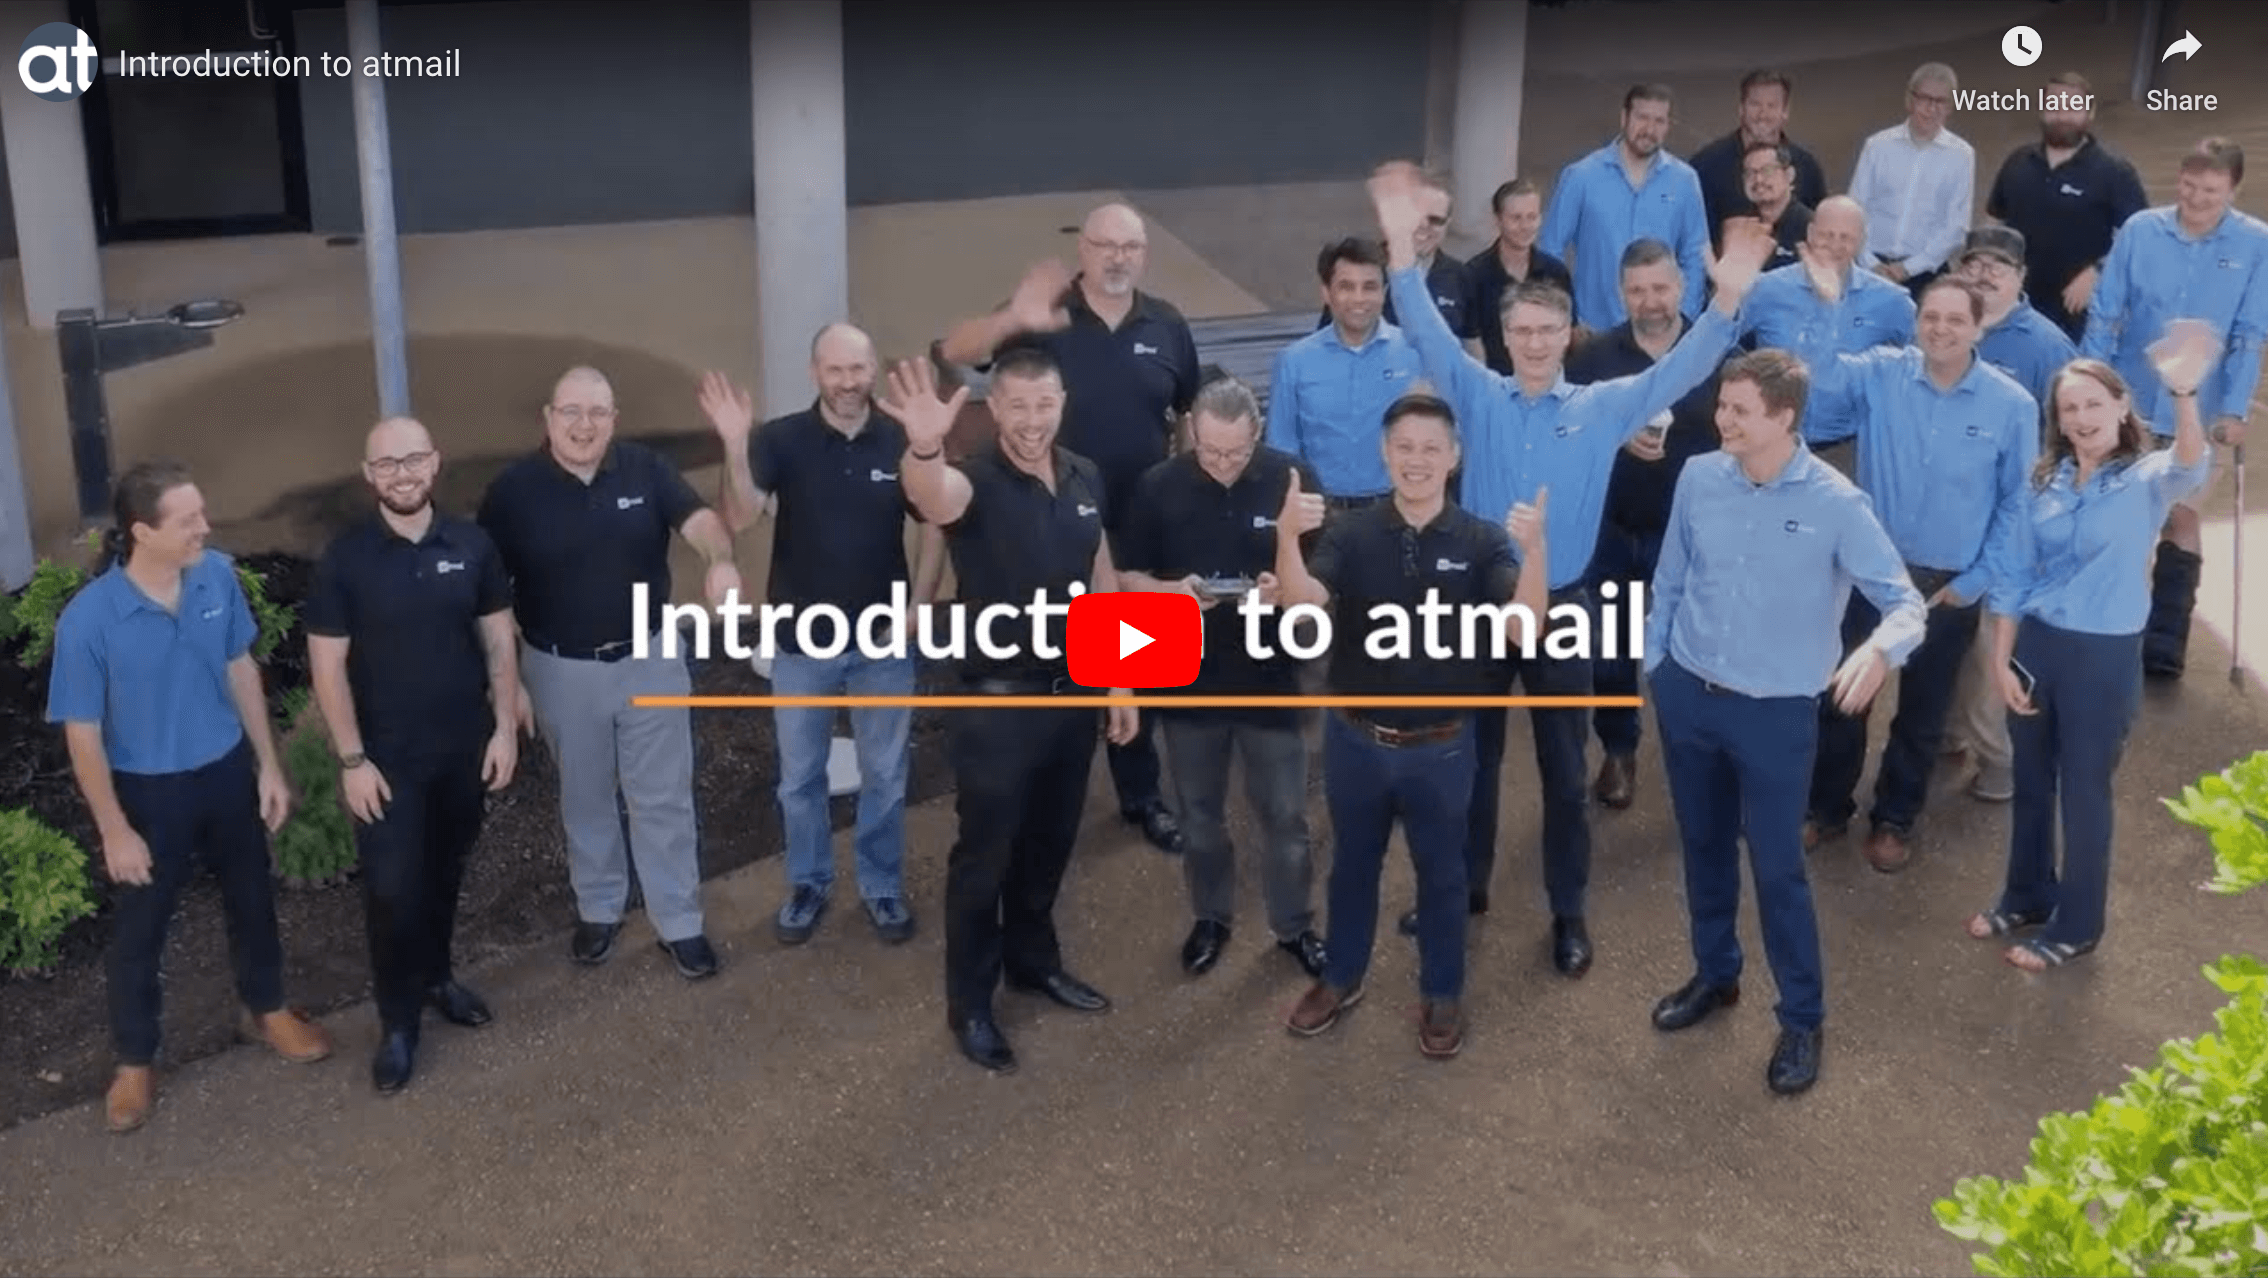 atmail company video - atmail email experts - working at atmail - atmail email hosting - atmail hosted email